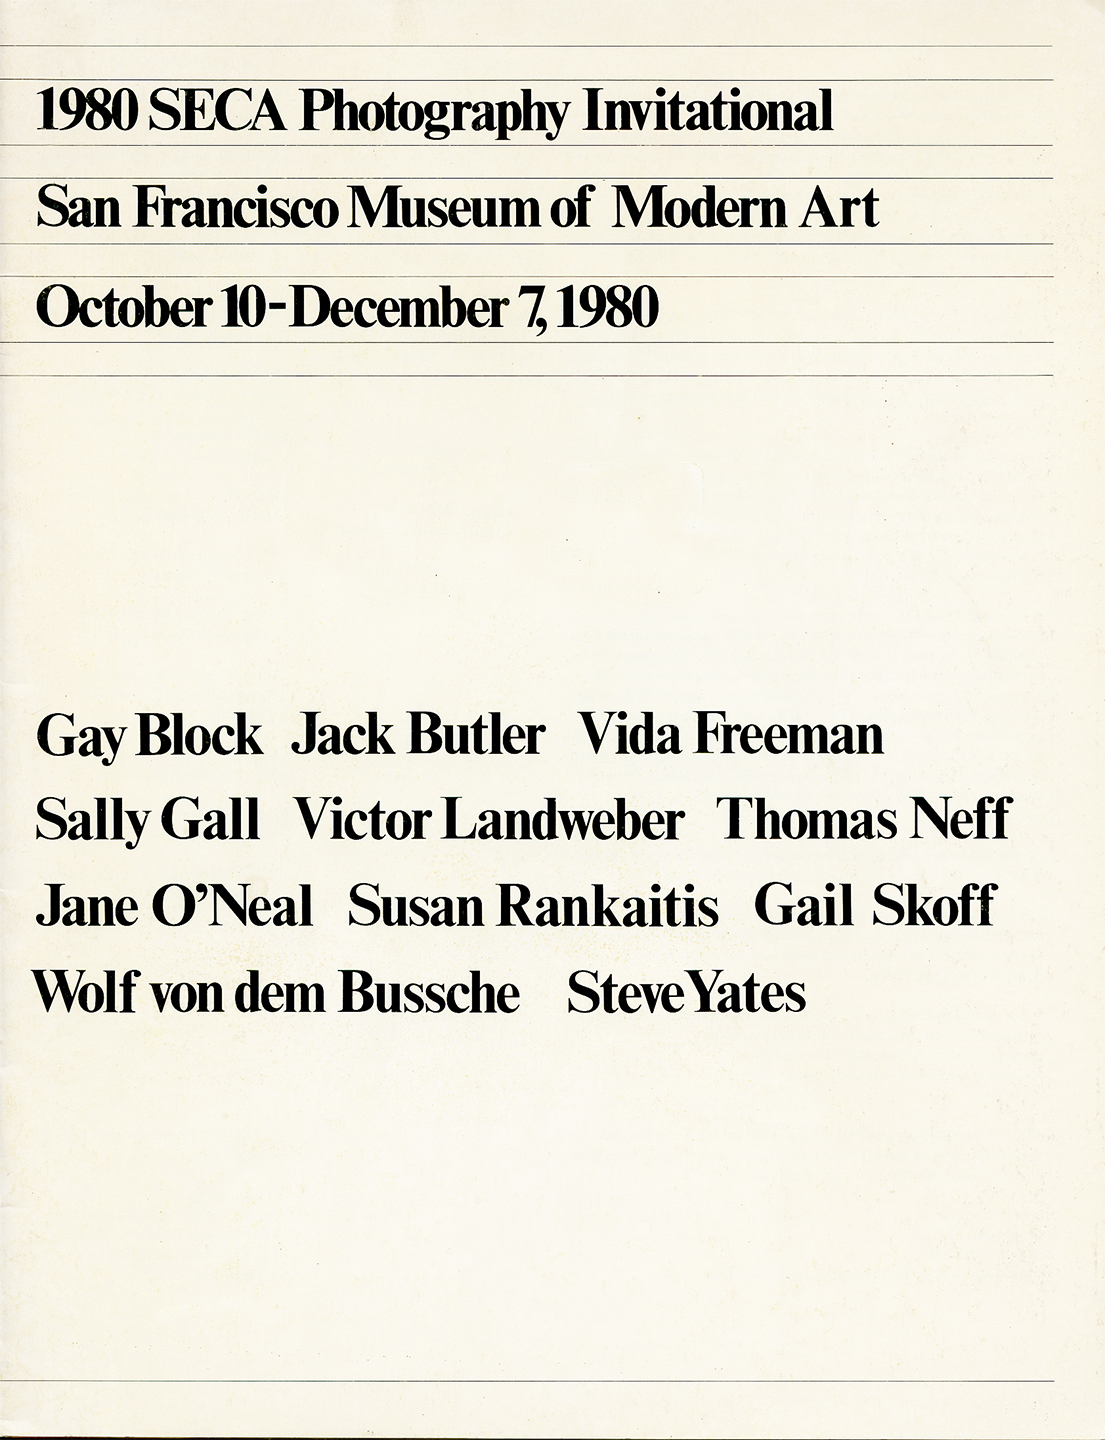 SECA Awards SanFrancisco Museum of Modern Art 1980